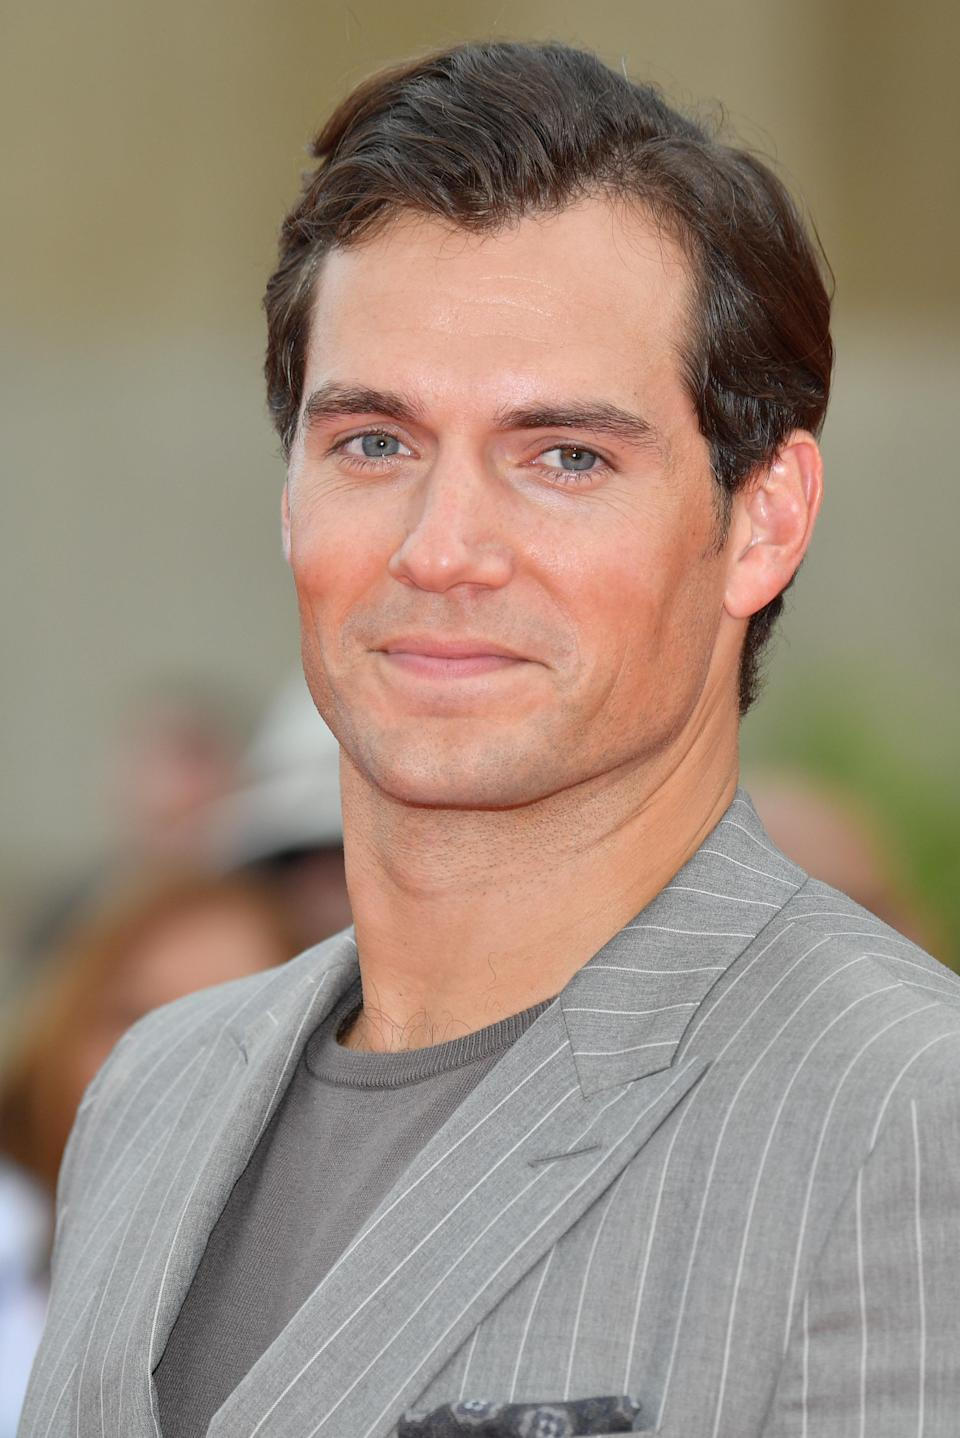 Henry Cavill. Image via Getty Images.